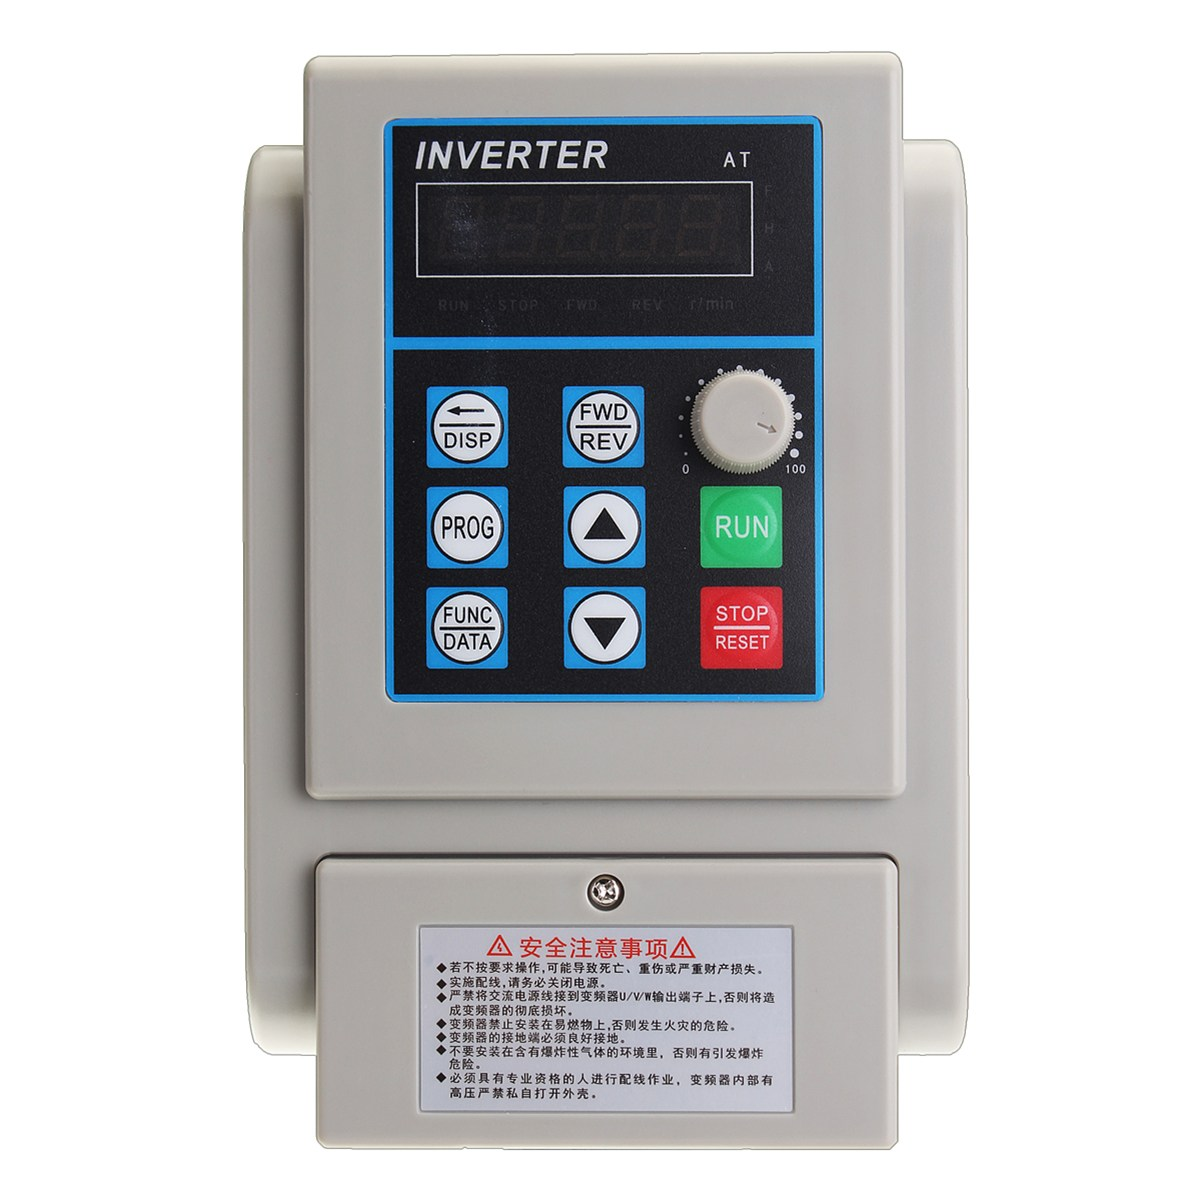 CNC Spindle motor speed control 220v 2.2kw VFD Variable Frequency Drive VFD 3HP frequency inverter for motor 1pc 2kw 3hp single phase variable frequency inverter drive inverter vsd vfd universal motor speed pwm control inverters mayitr